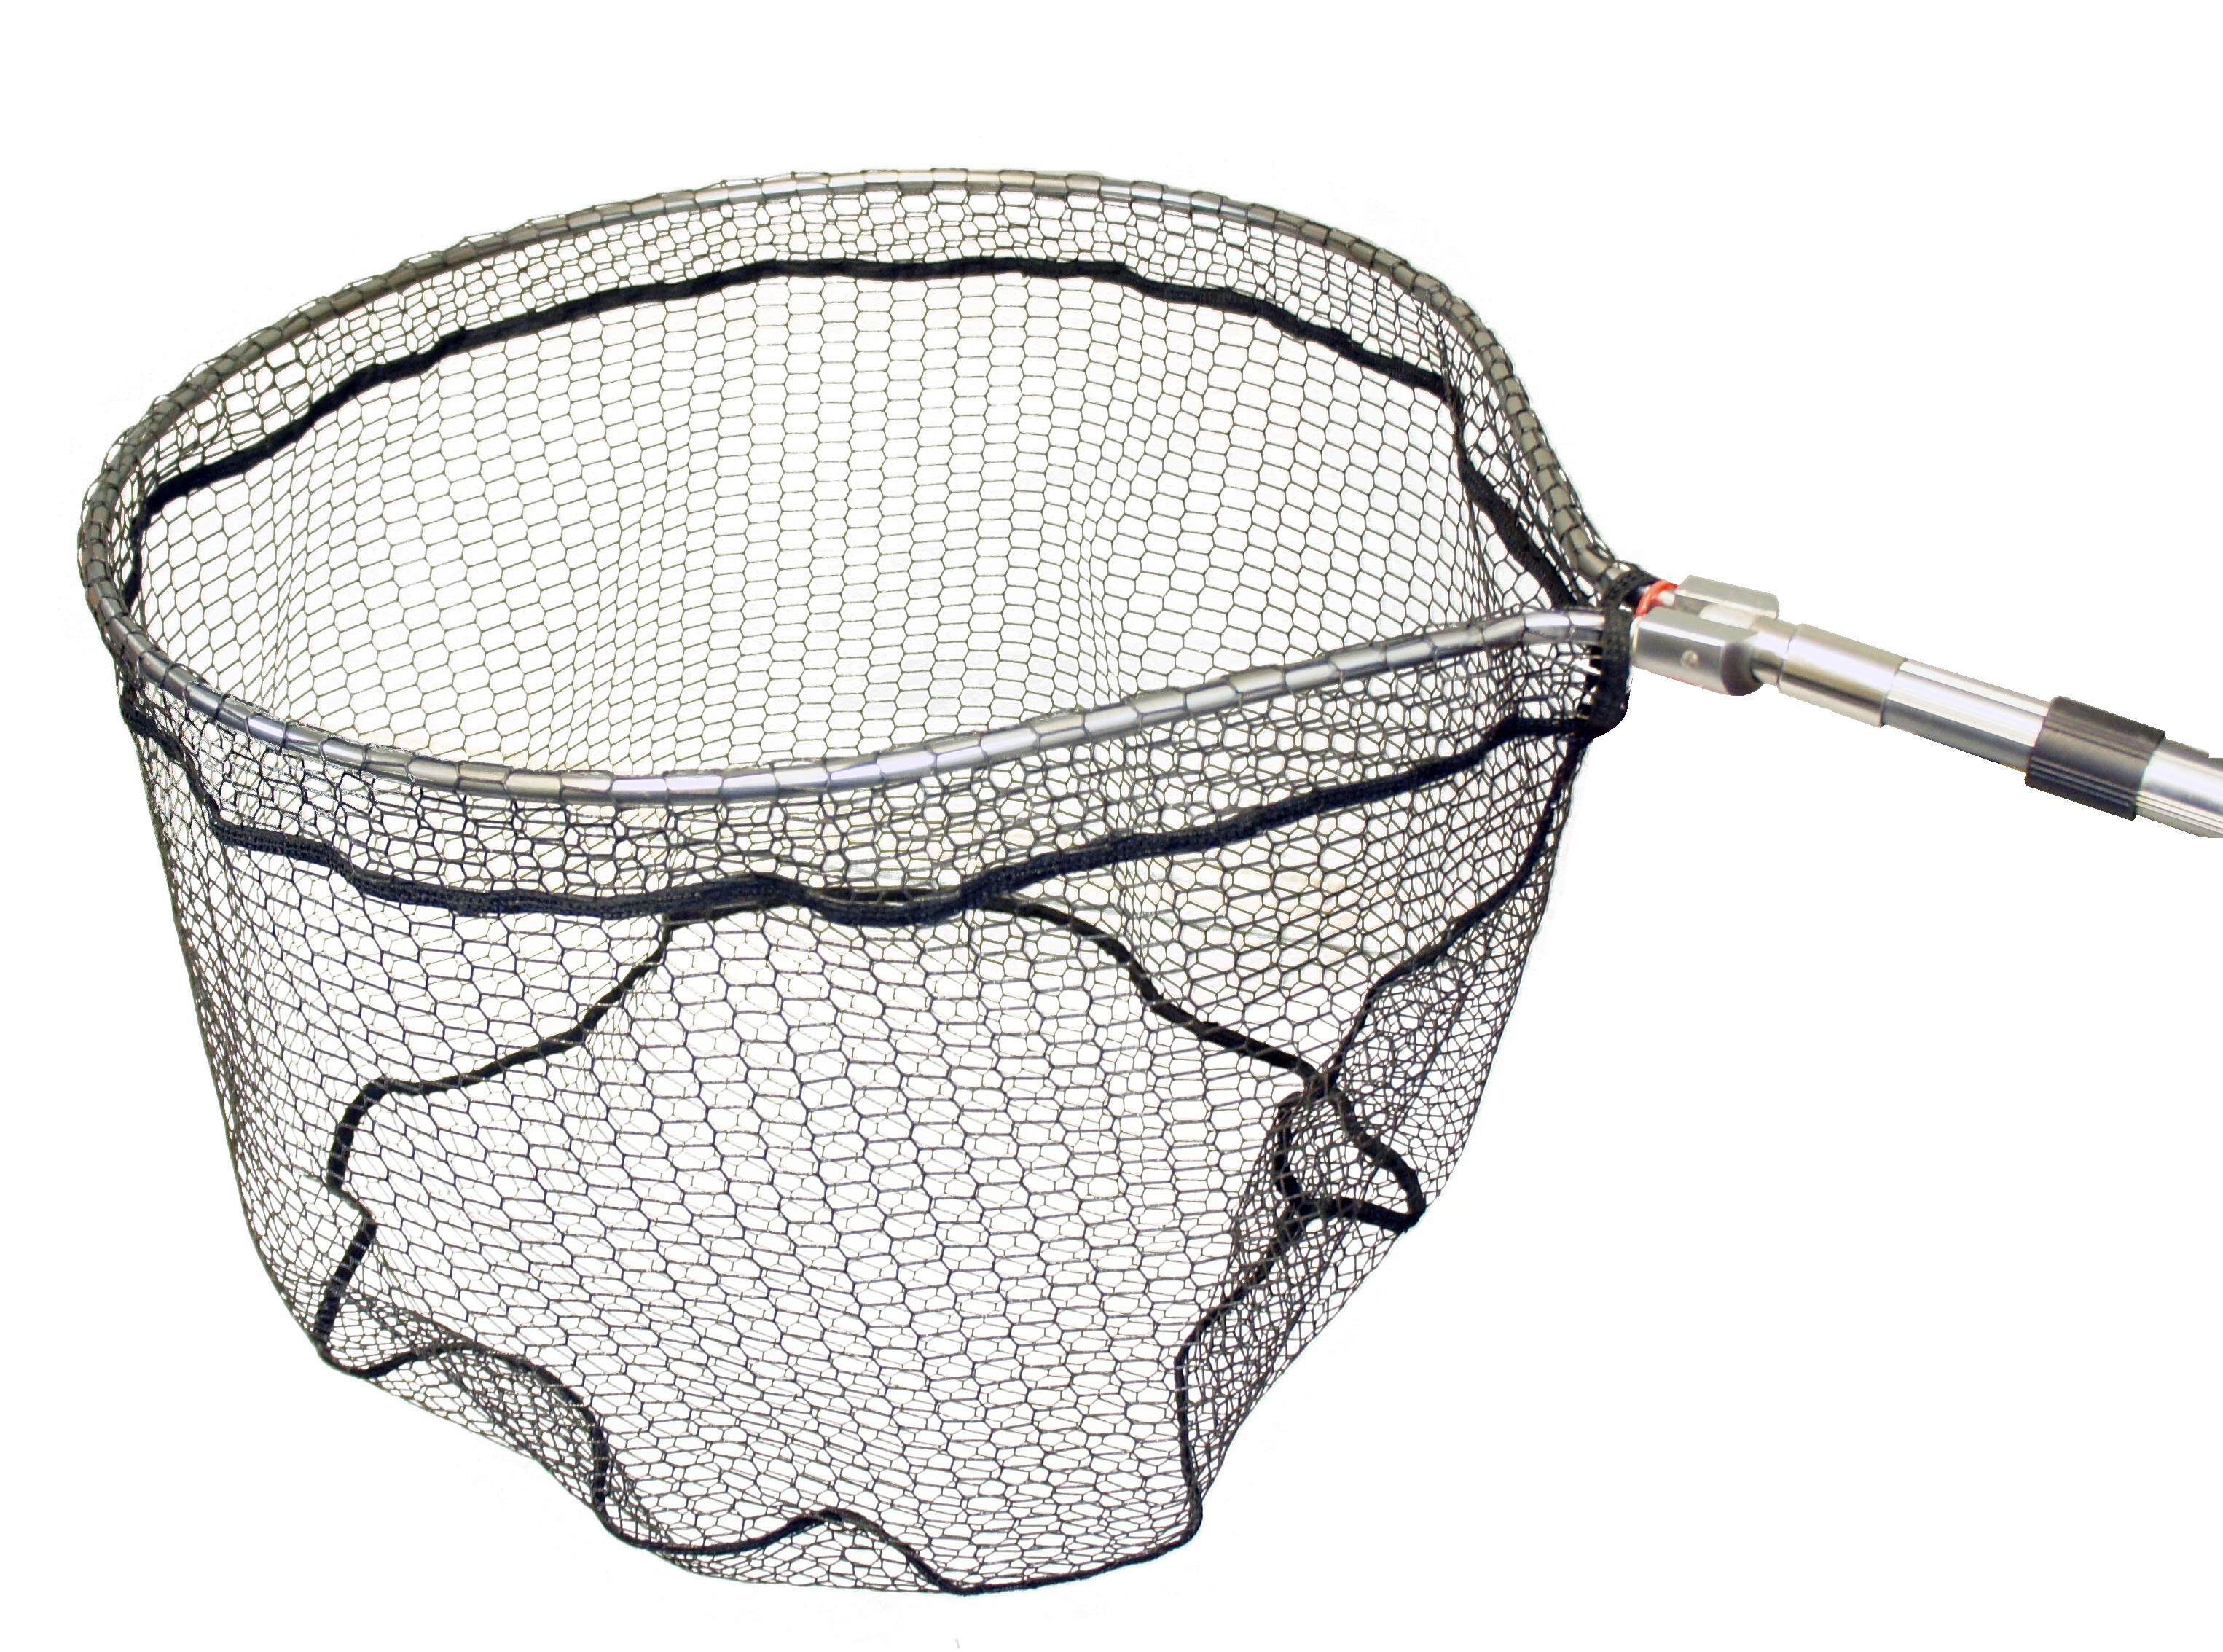 Stillwater tele pro folding landing net glasgow angling for Collapsible fishing net